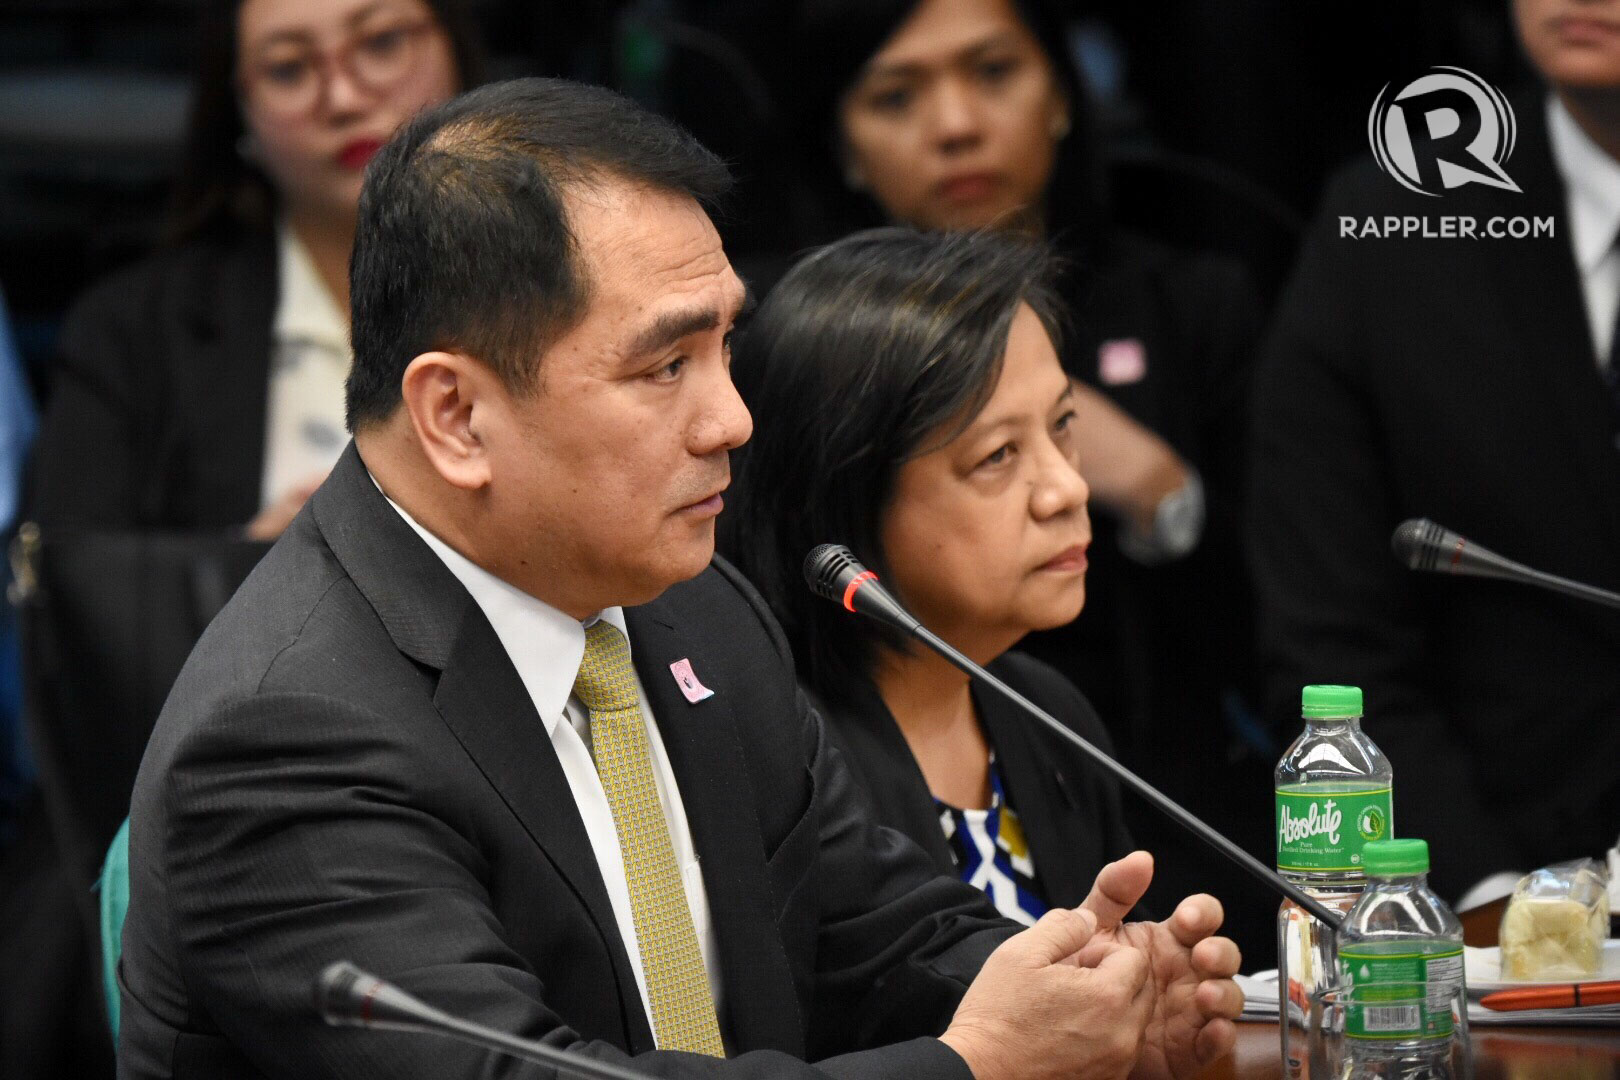 THE DEAN. The UST Faculty of Civil Law Dean Nilo Divina is also accused of being complicit in Castillo's hazing done by his own fraternity, Aegis Juris. Photo by Rappler